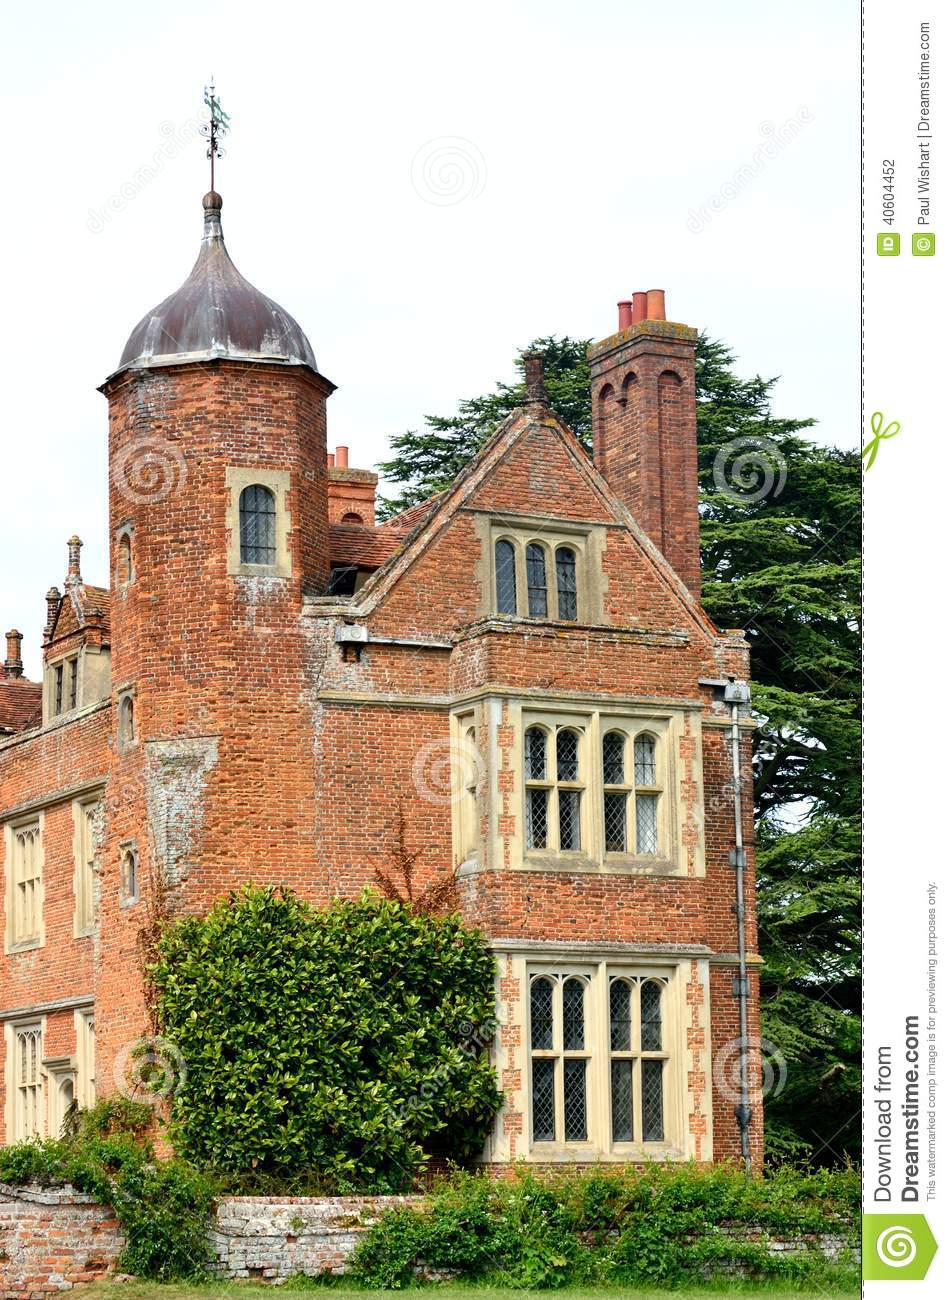 Red Brick Tudor Building Stock Photo Image Of Manor 40604452